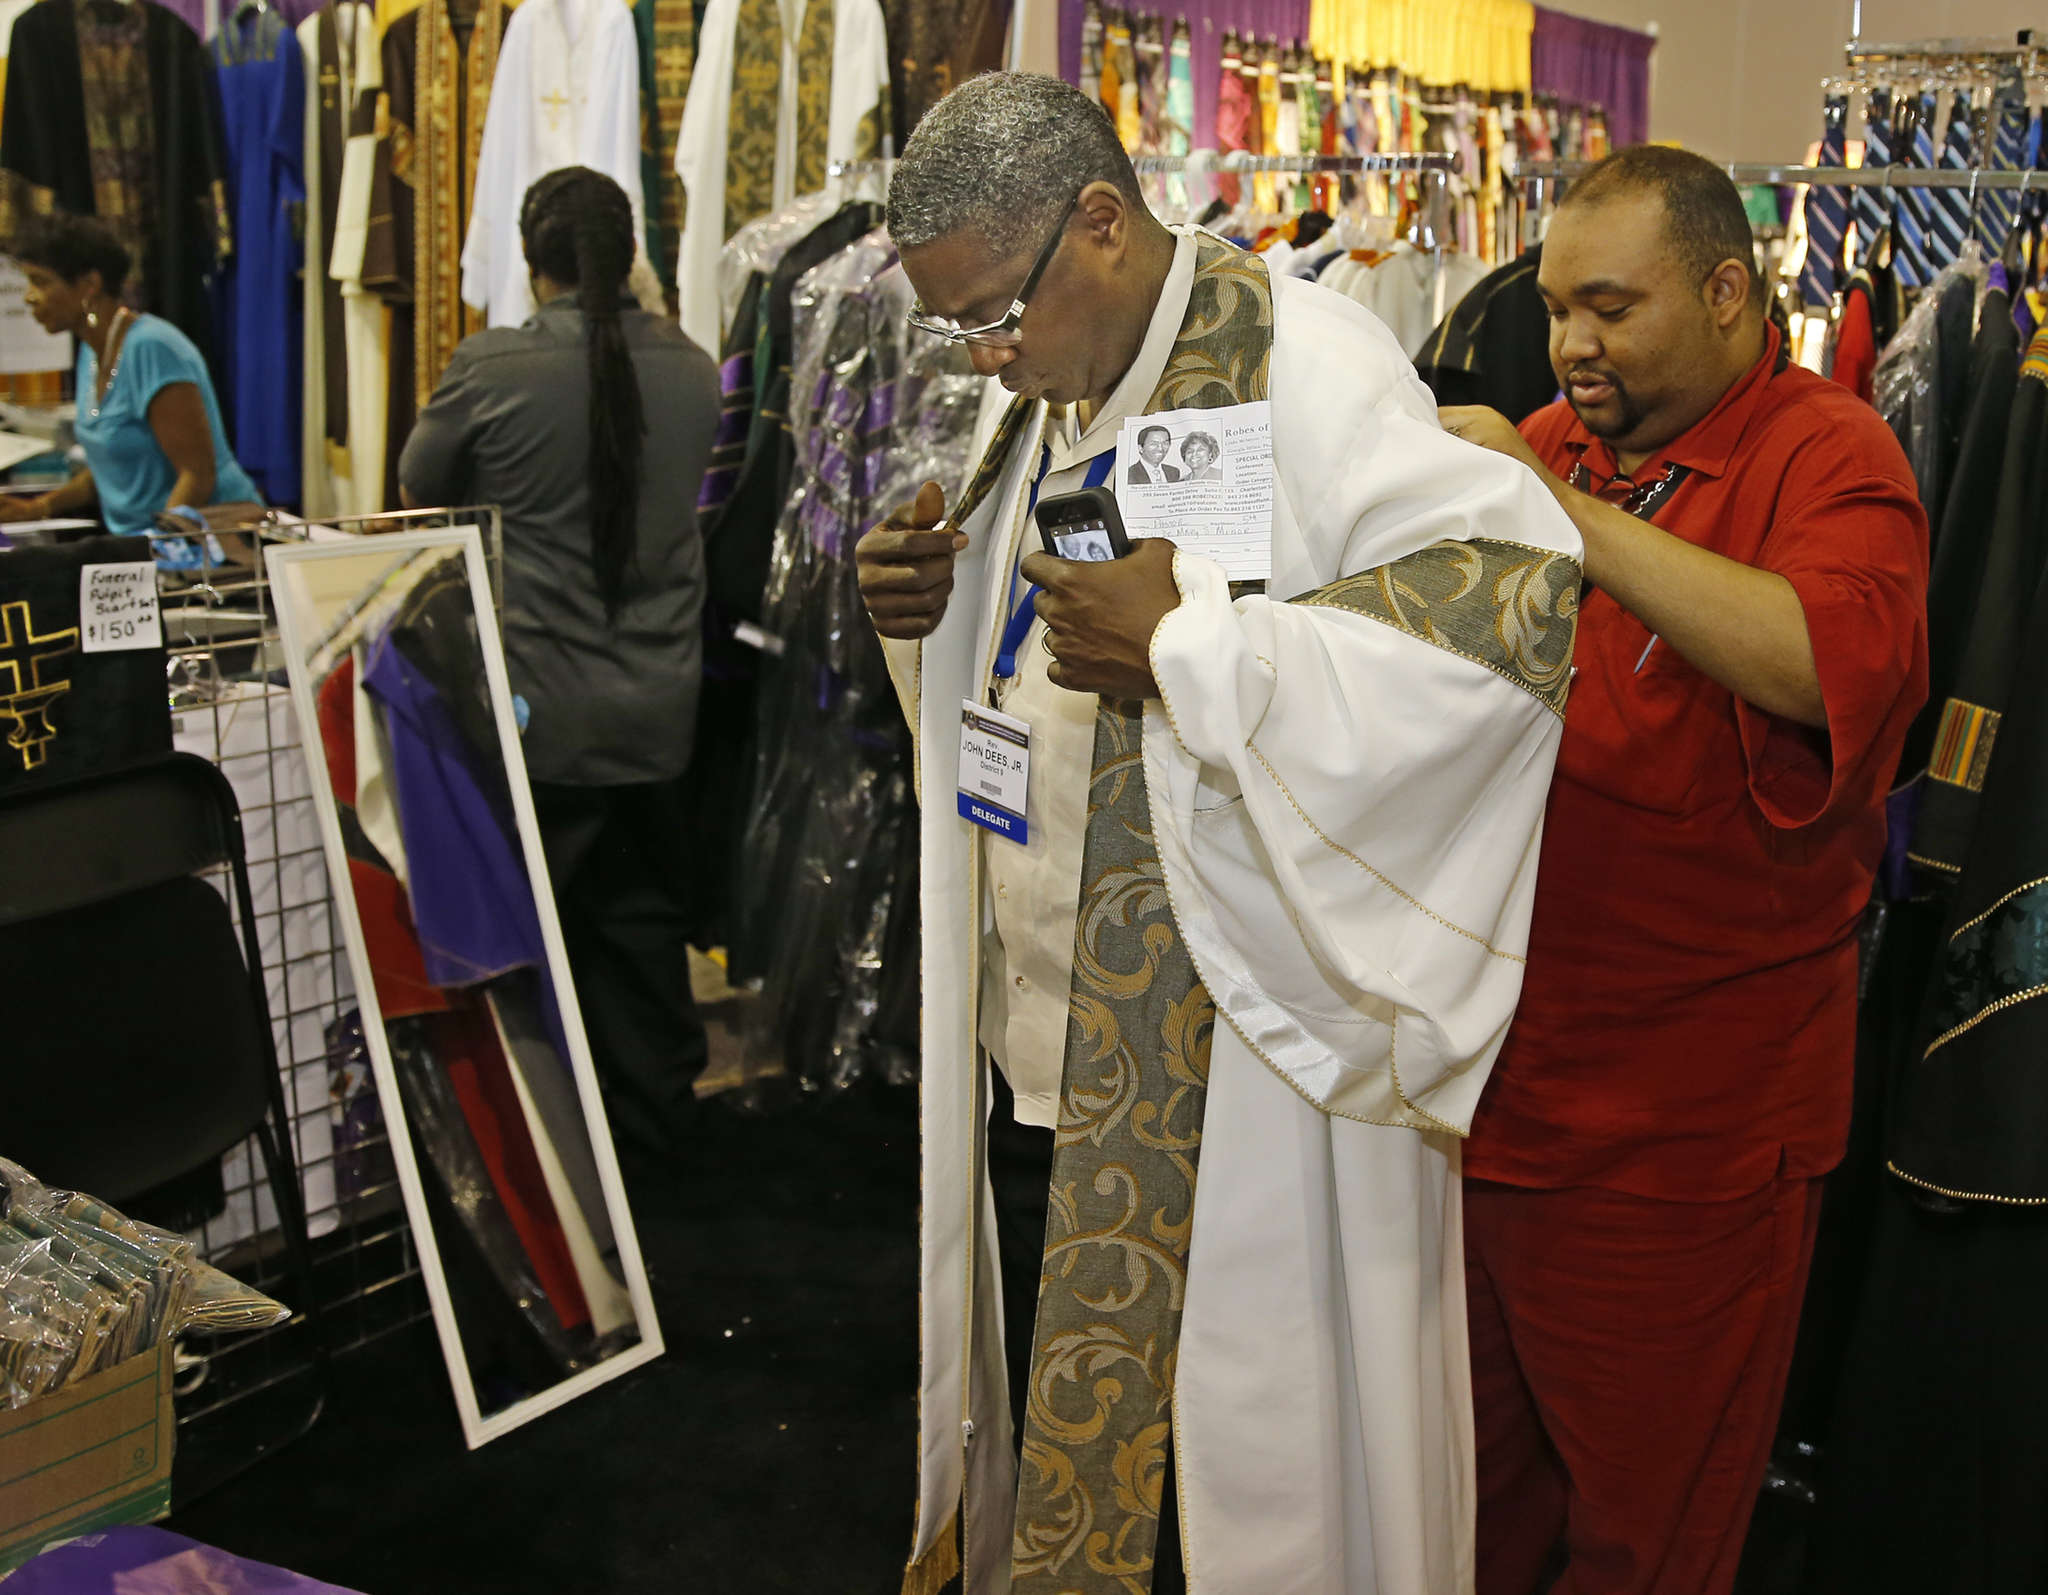 The Rev. John L. Dees Jr. from Mobile, Ala., tries on a preacher´s First Sunday robe with the help of the Rev. Willis Camp III at a booth in the expo hall of the Convention Center. The African Methodist Episcopal conference gathered faithful from all over the country and the world. MICHAEL BRYANT / Staff photographer